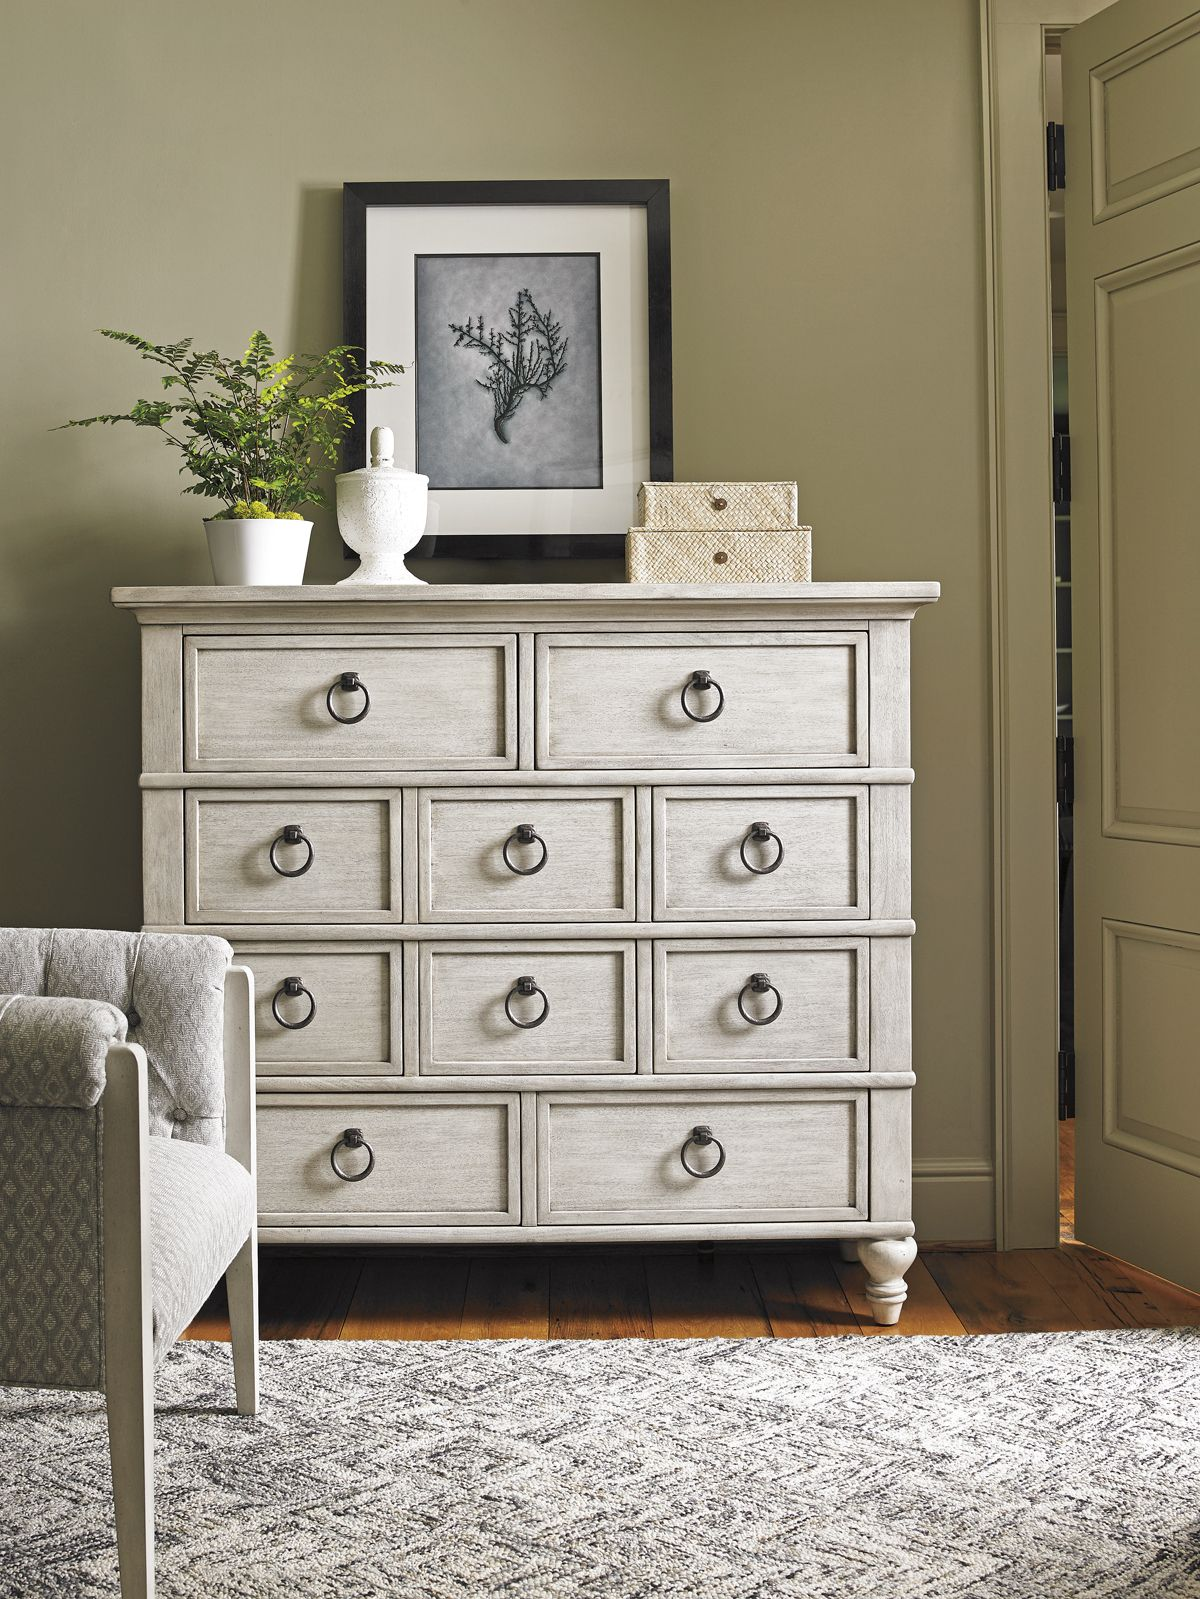 Oyster Bay Fall River Drawer Chest Lexington furniture